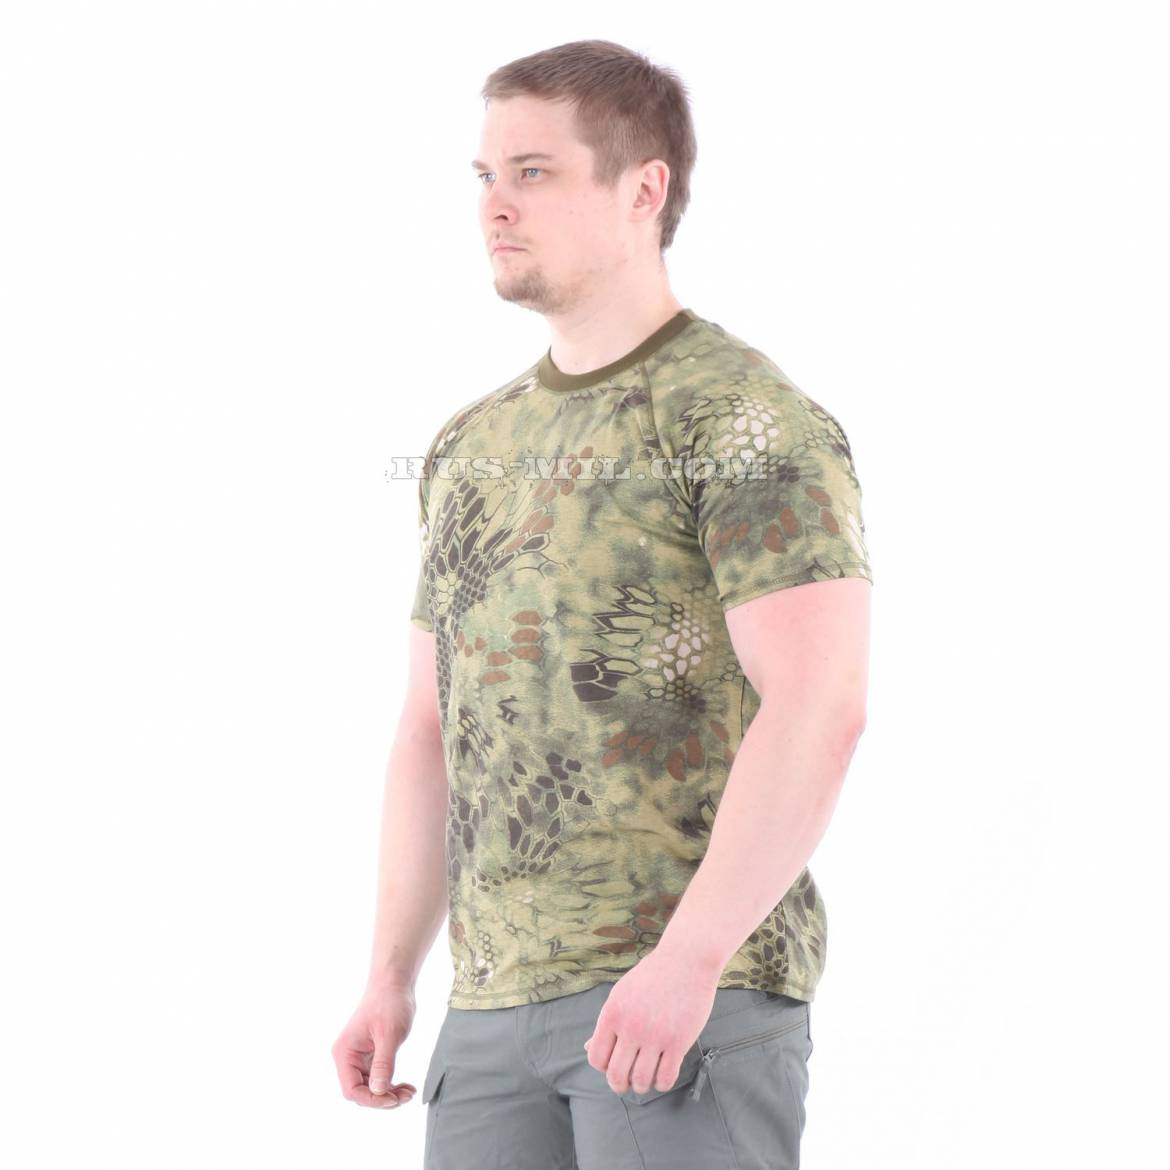 Russian-Cotton-T-Shirt-in-Mandrake-for-sale.jpg